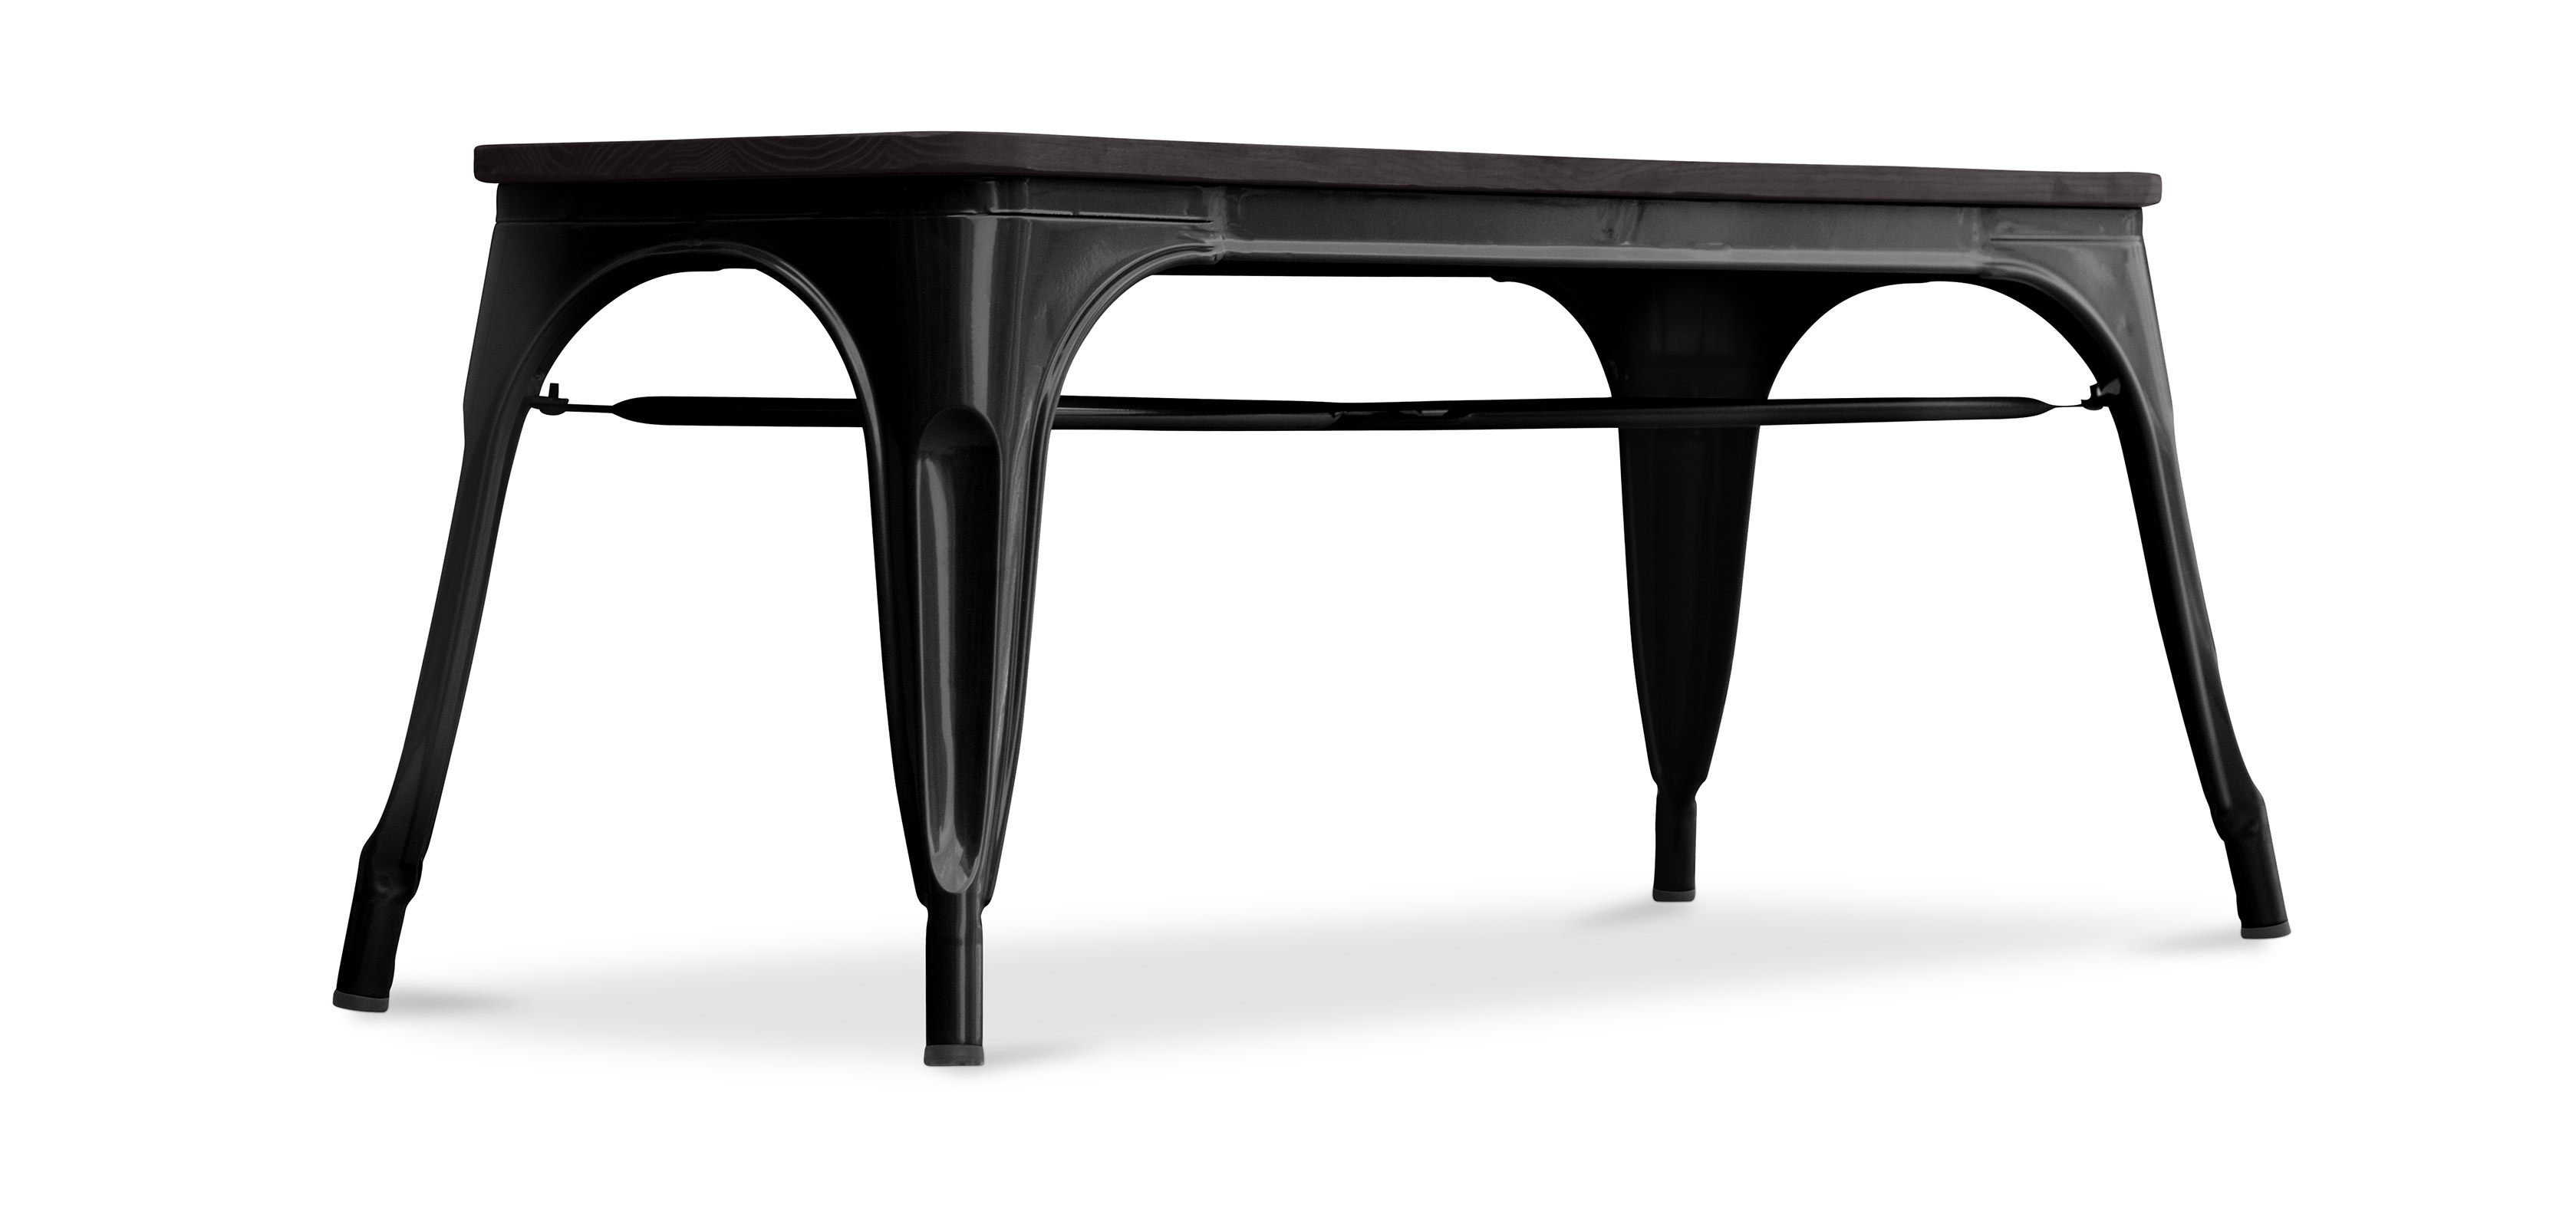 IN STOCK. IN STOCK. Presentation Of Tolix Bench Xavier Pauchard